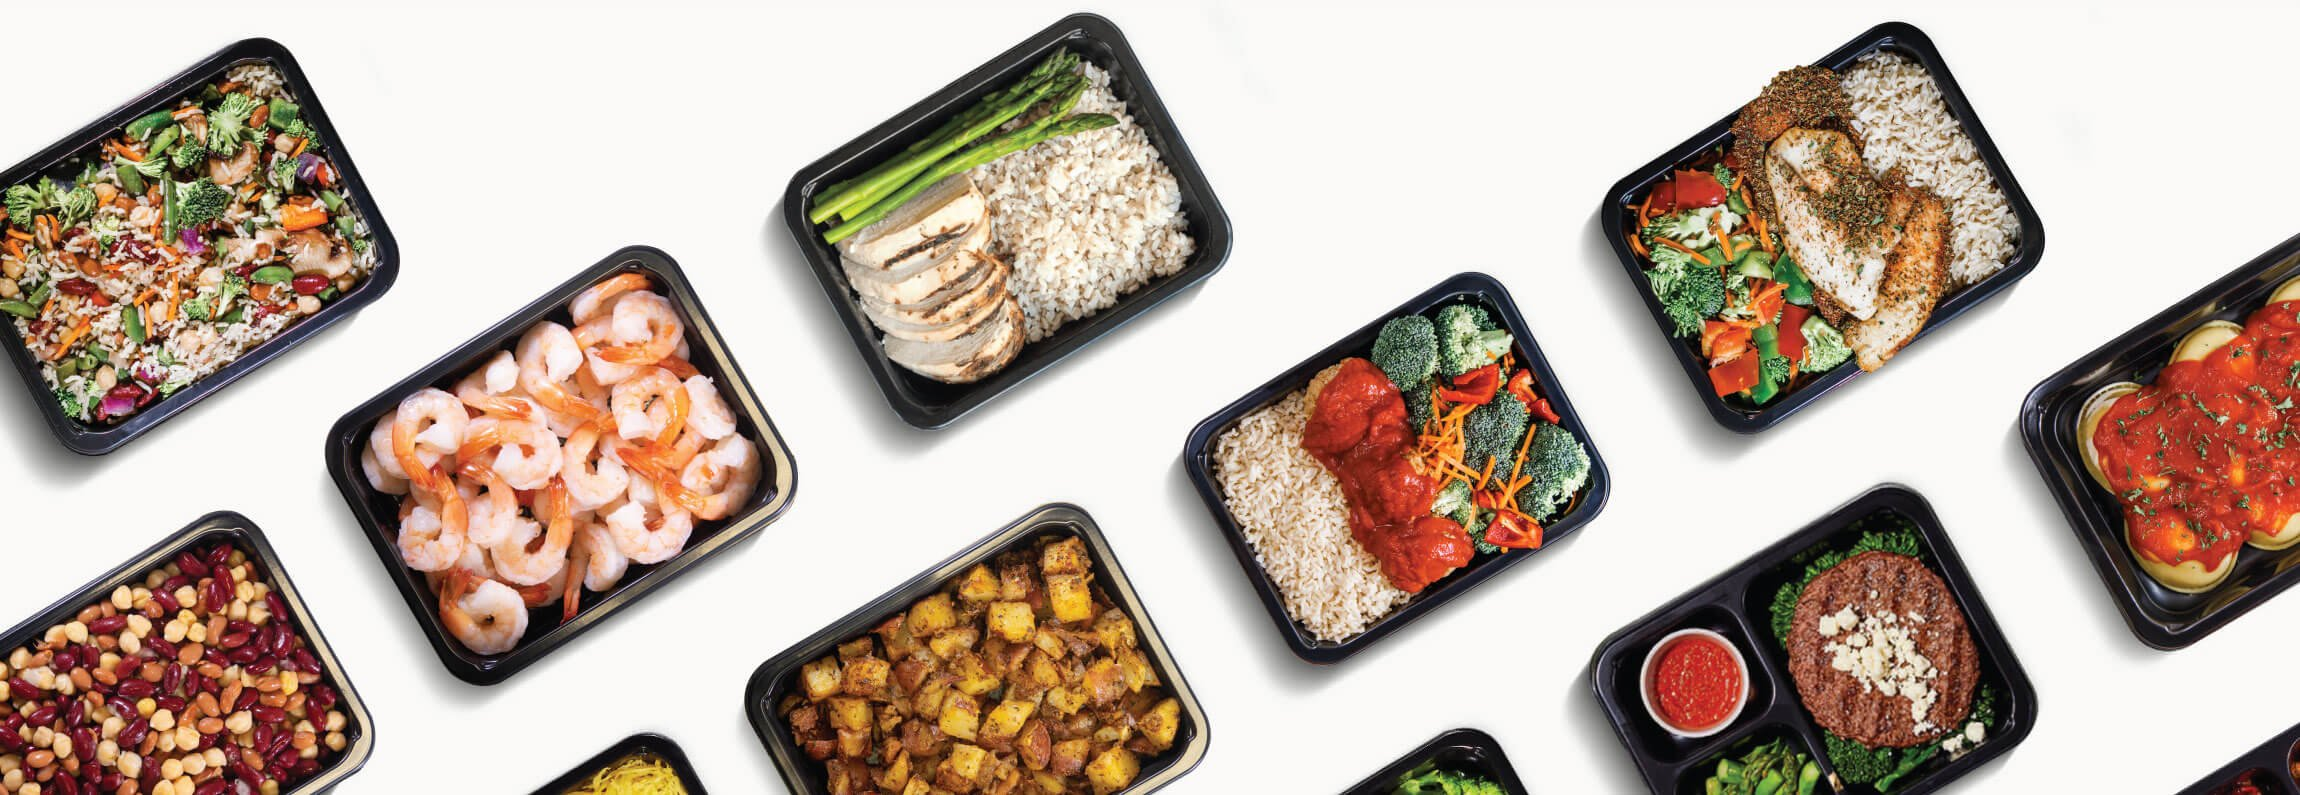 Top down picture of food inside the food container. Perfect healthy Las Vegas weight loss meal assortment